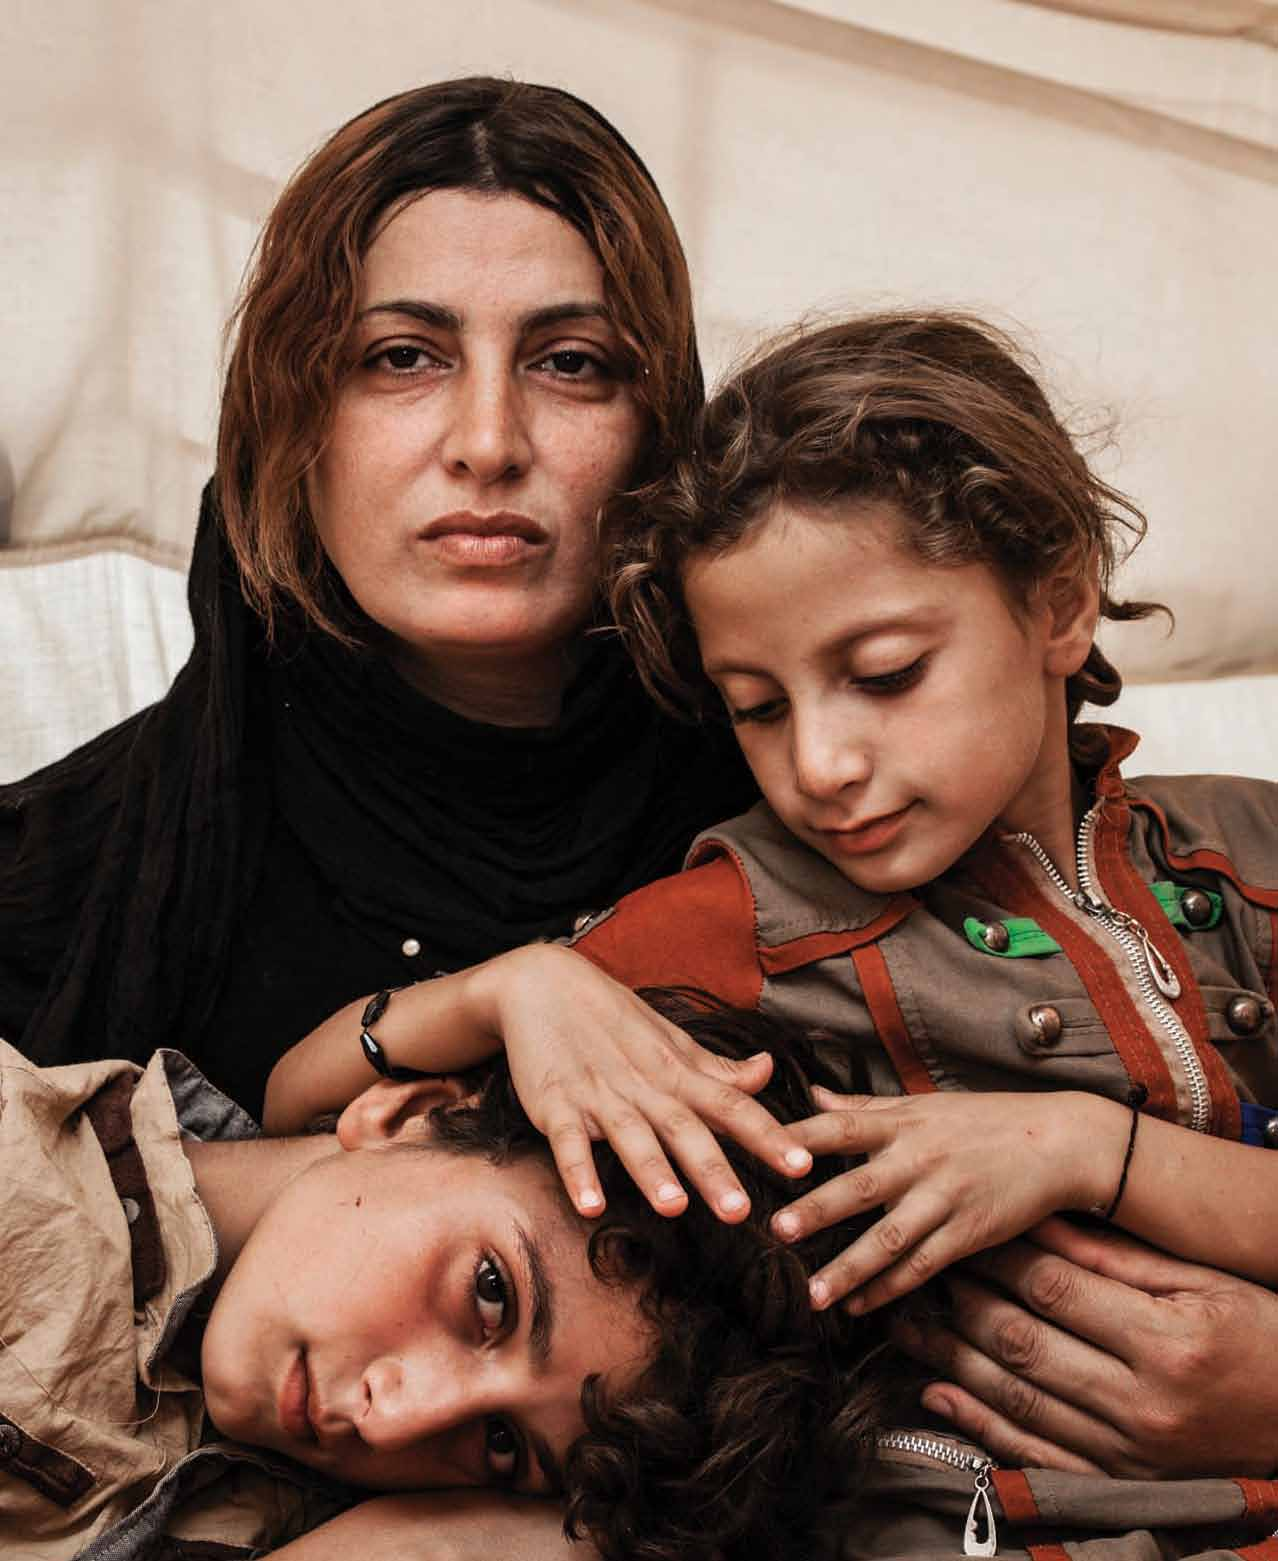 Amira s family fled their village in Mosul, Iraq in June 2014.